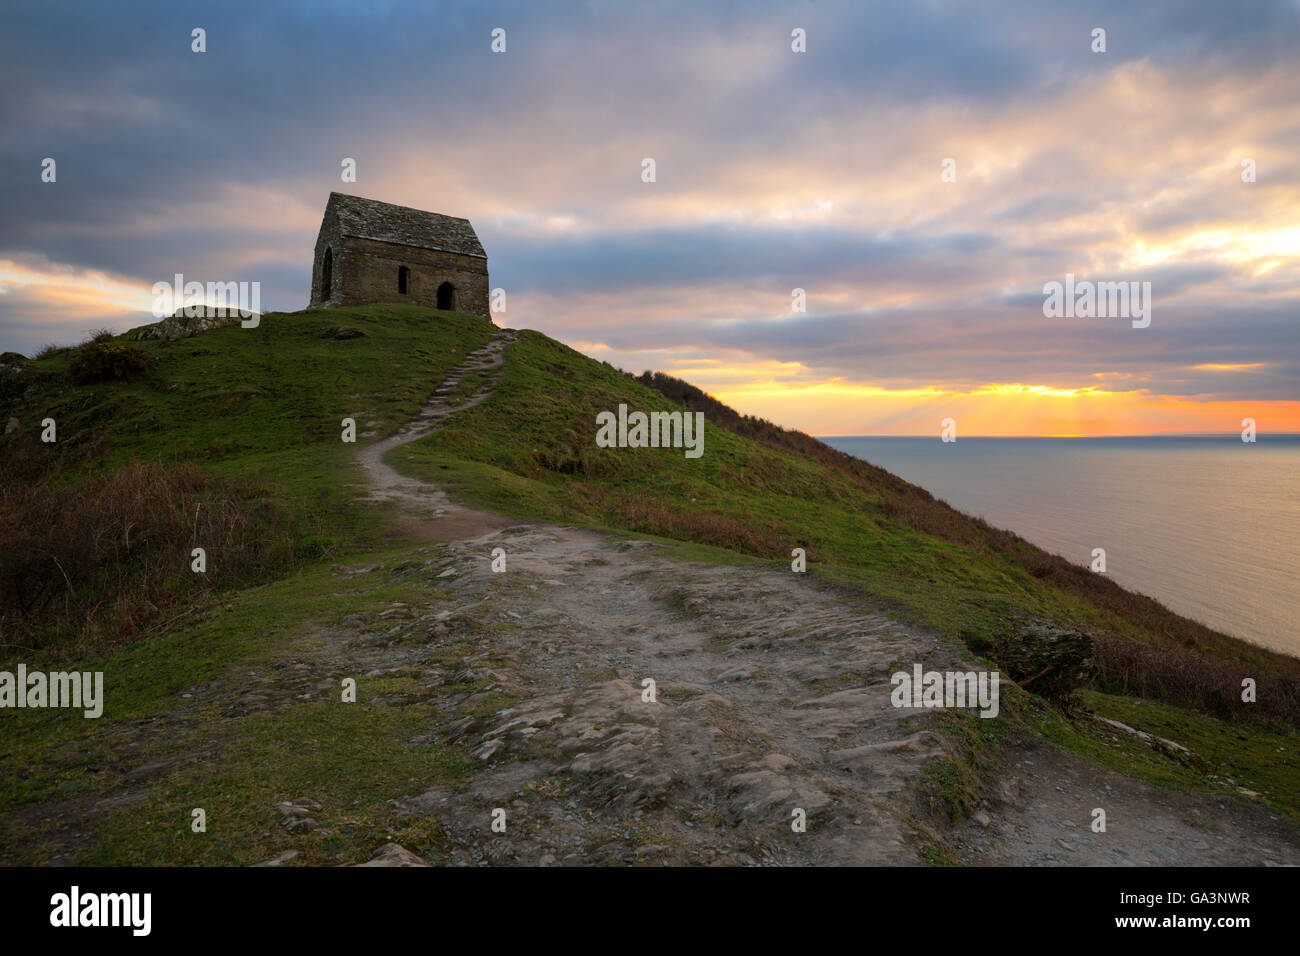 Chapel of St Michael at Rame Head - Stock Image